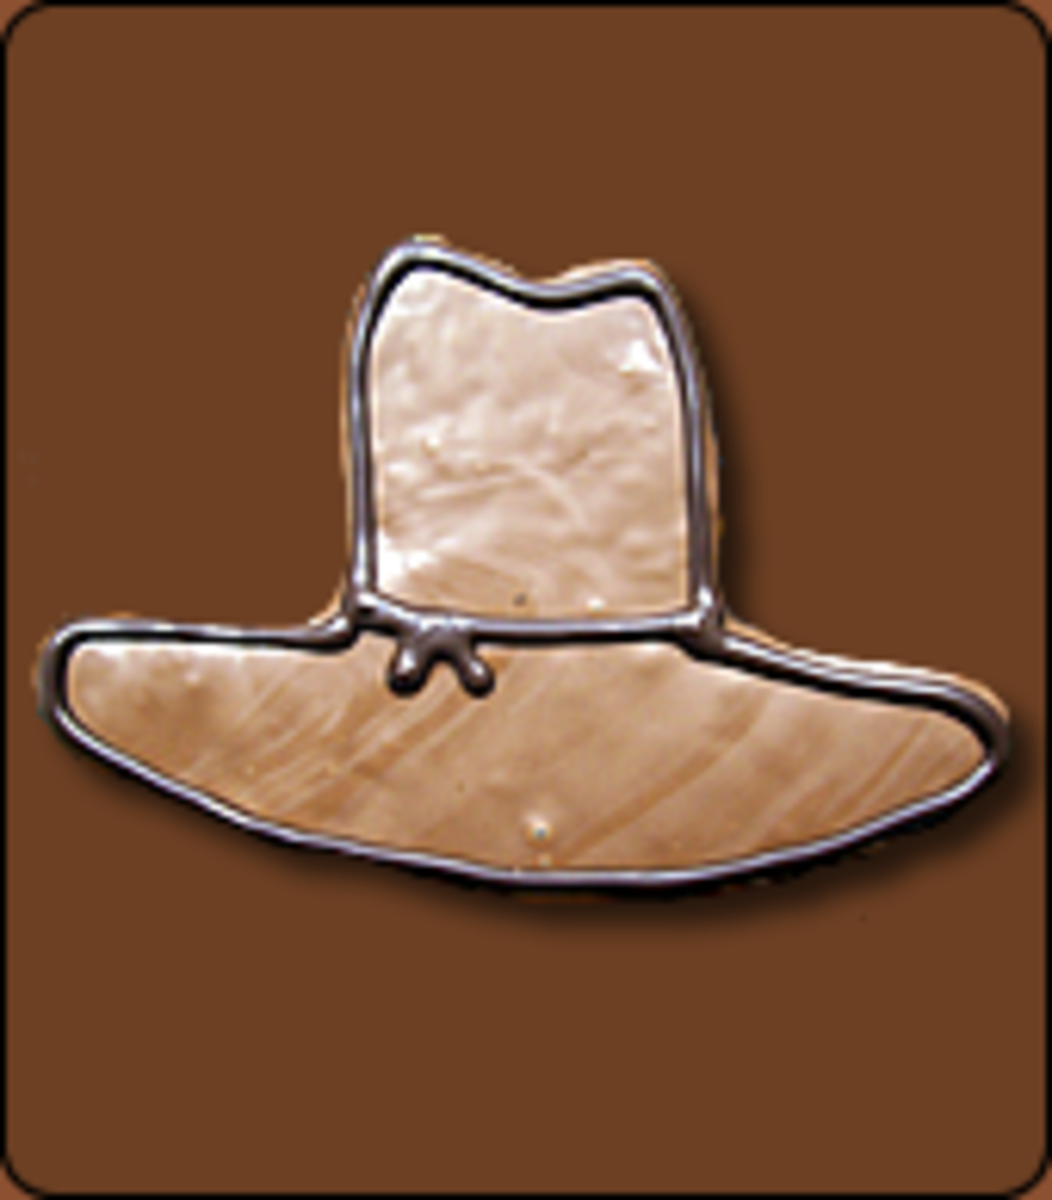 Chocolate Covered Rice Krispy Treat Cowboy Hat